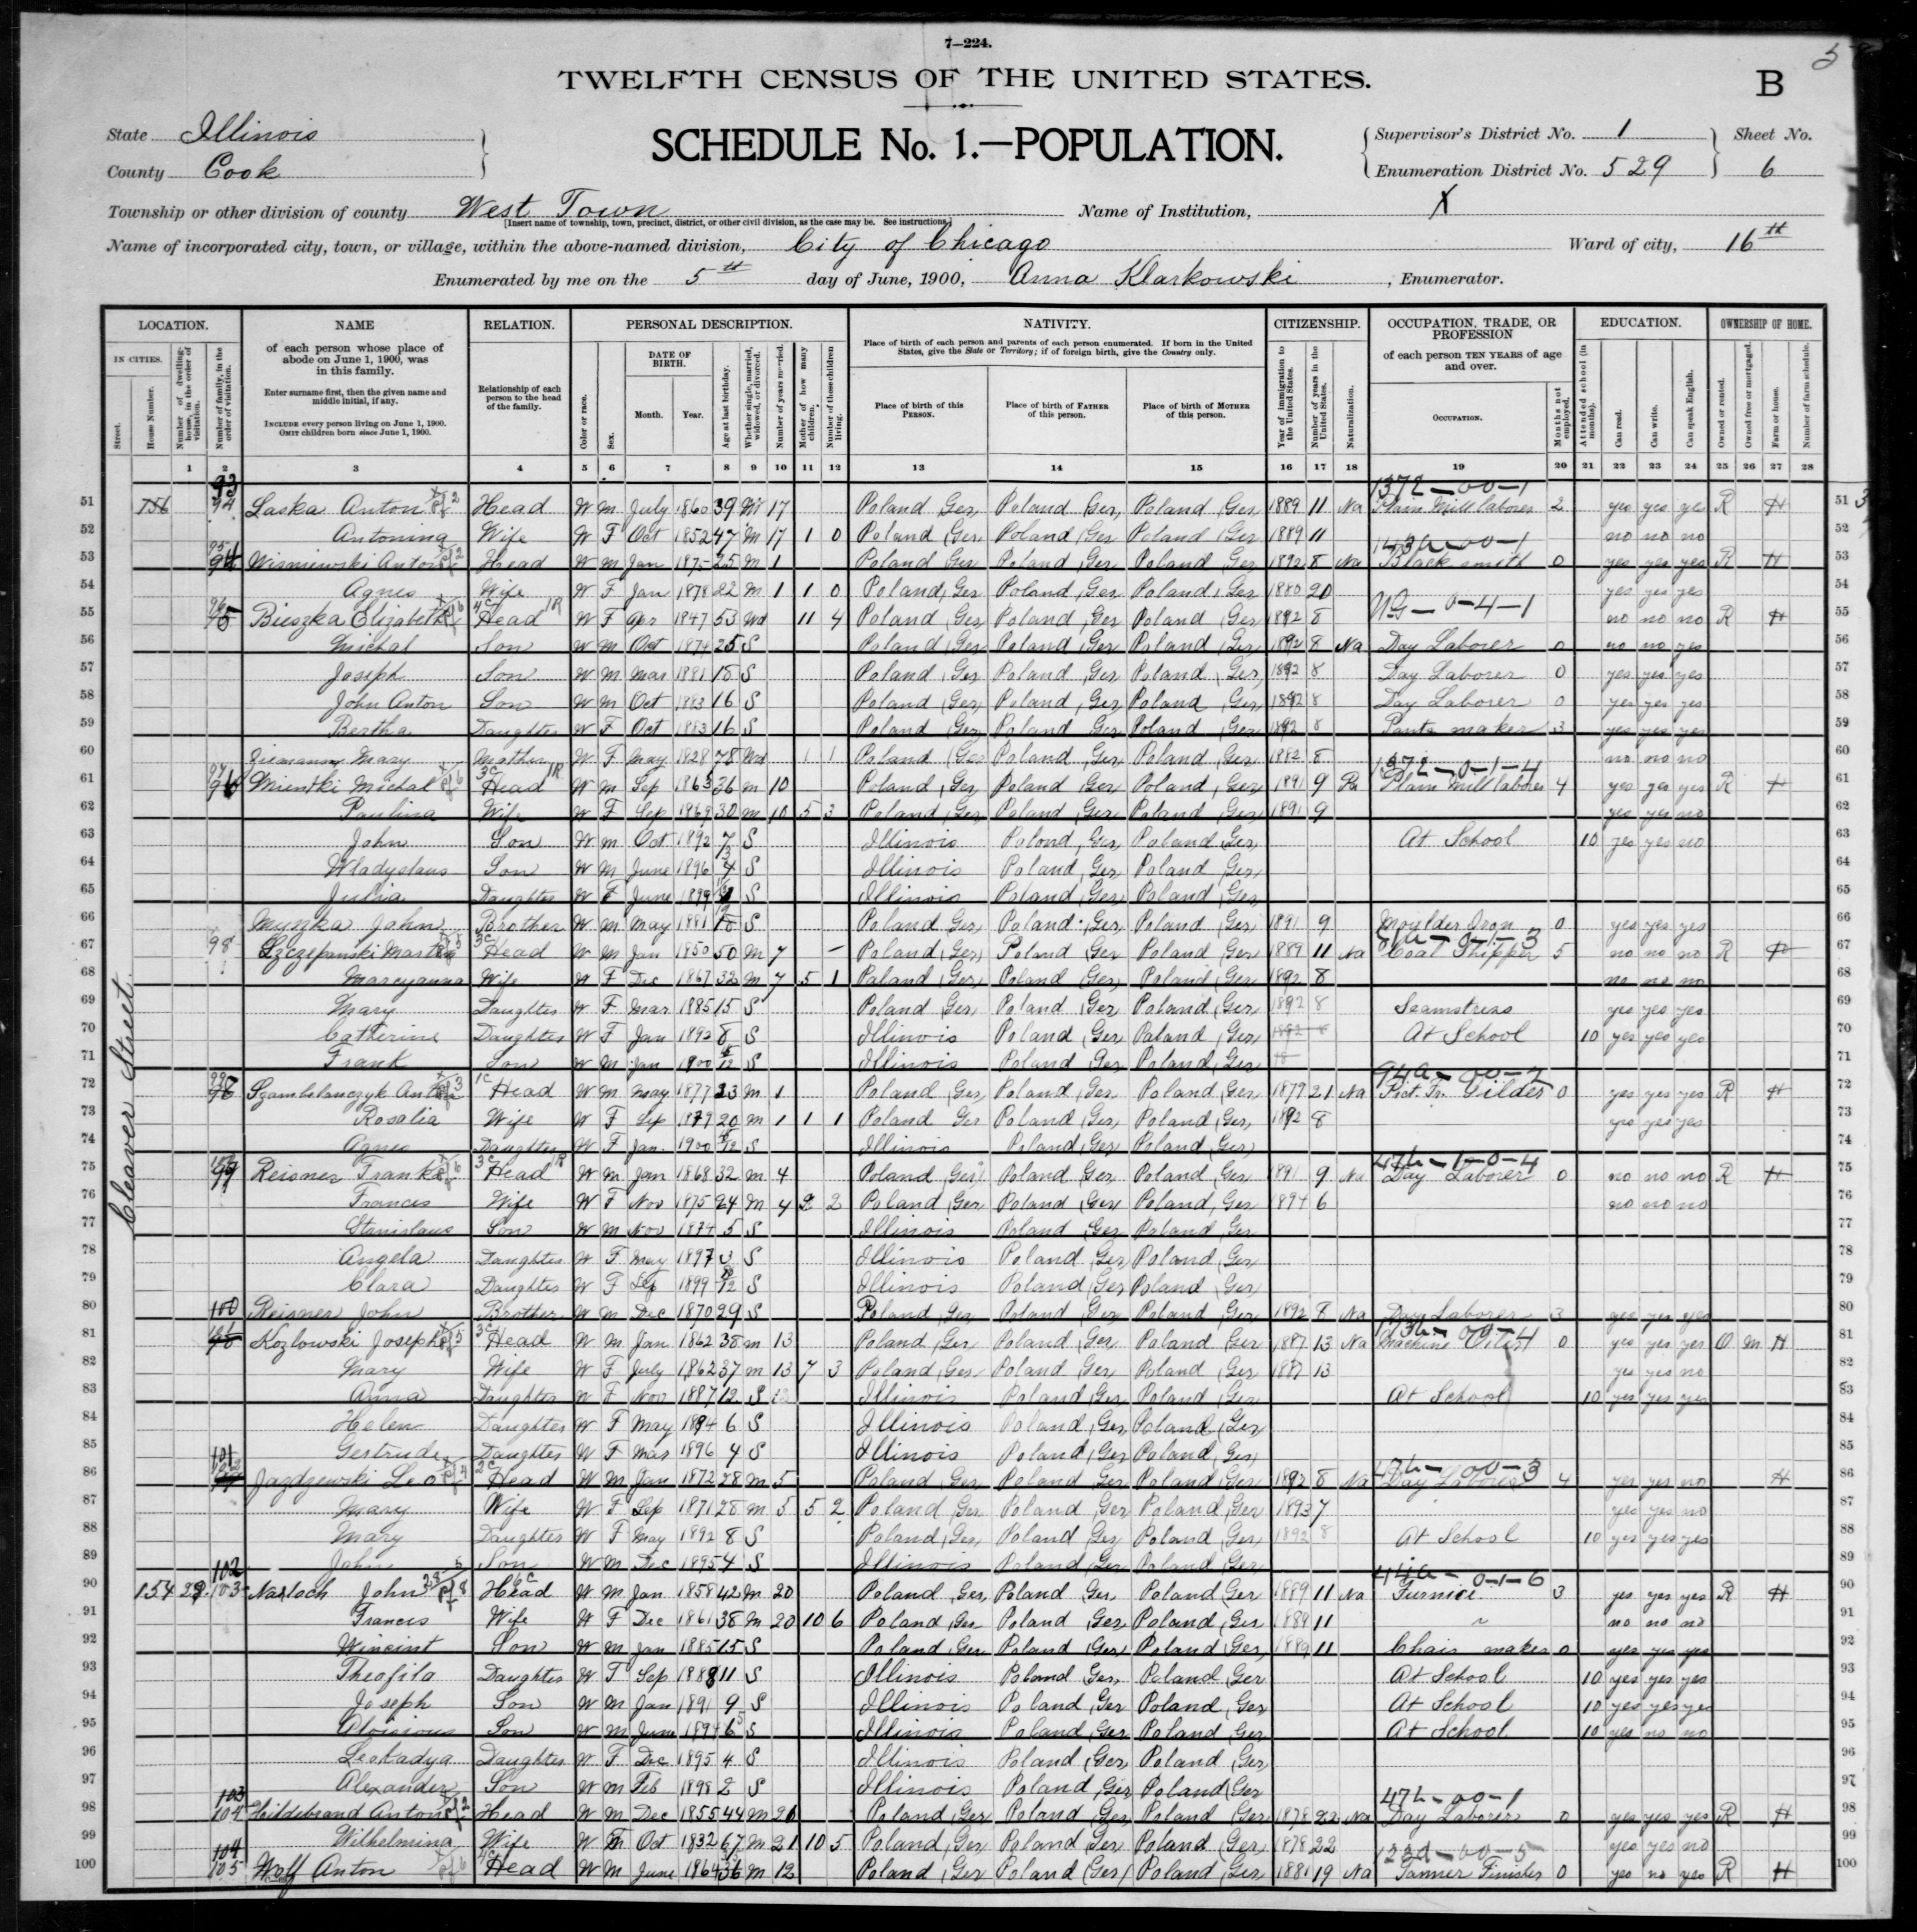 Illinois: COOK County, Enumeration District 529, Sheet No. 6B